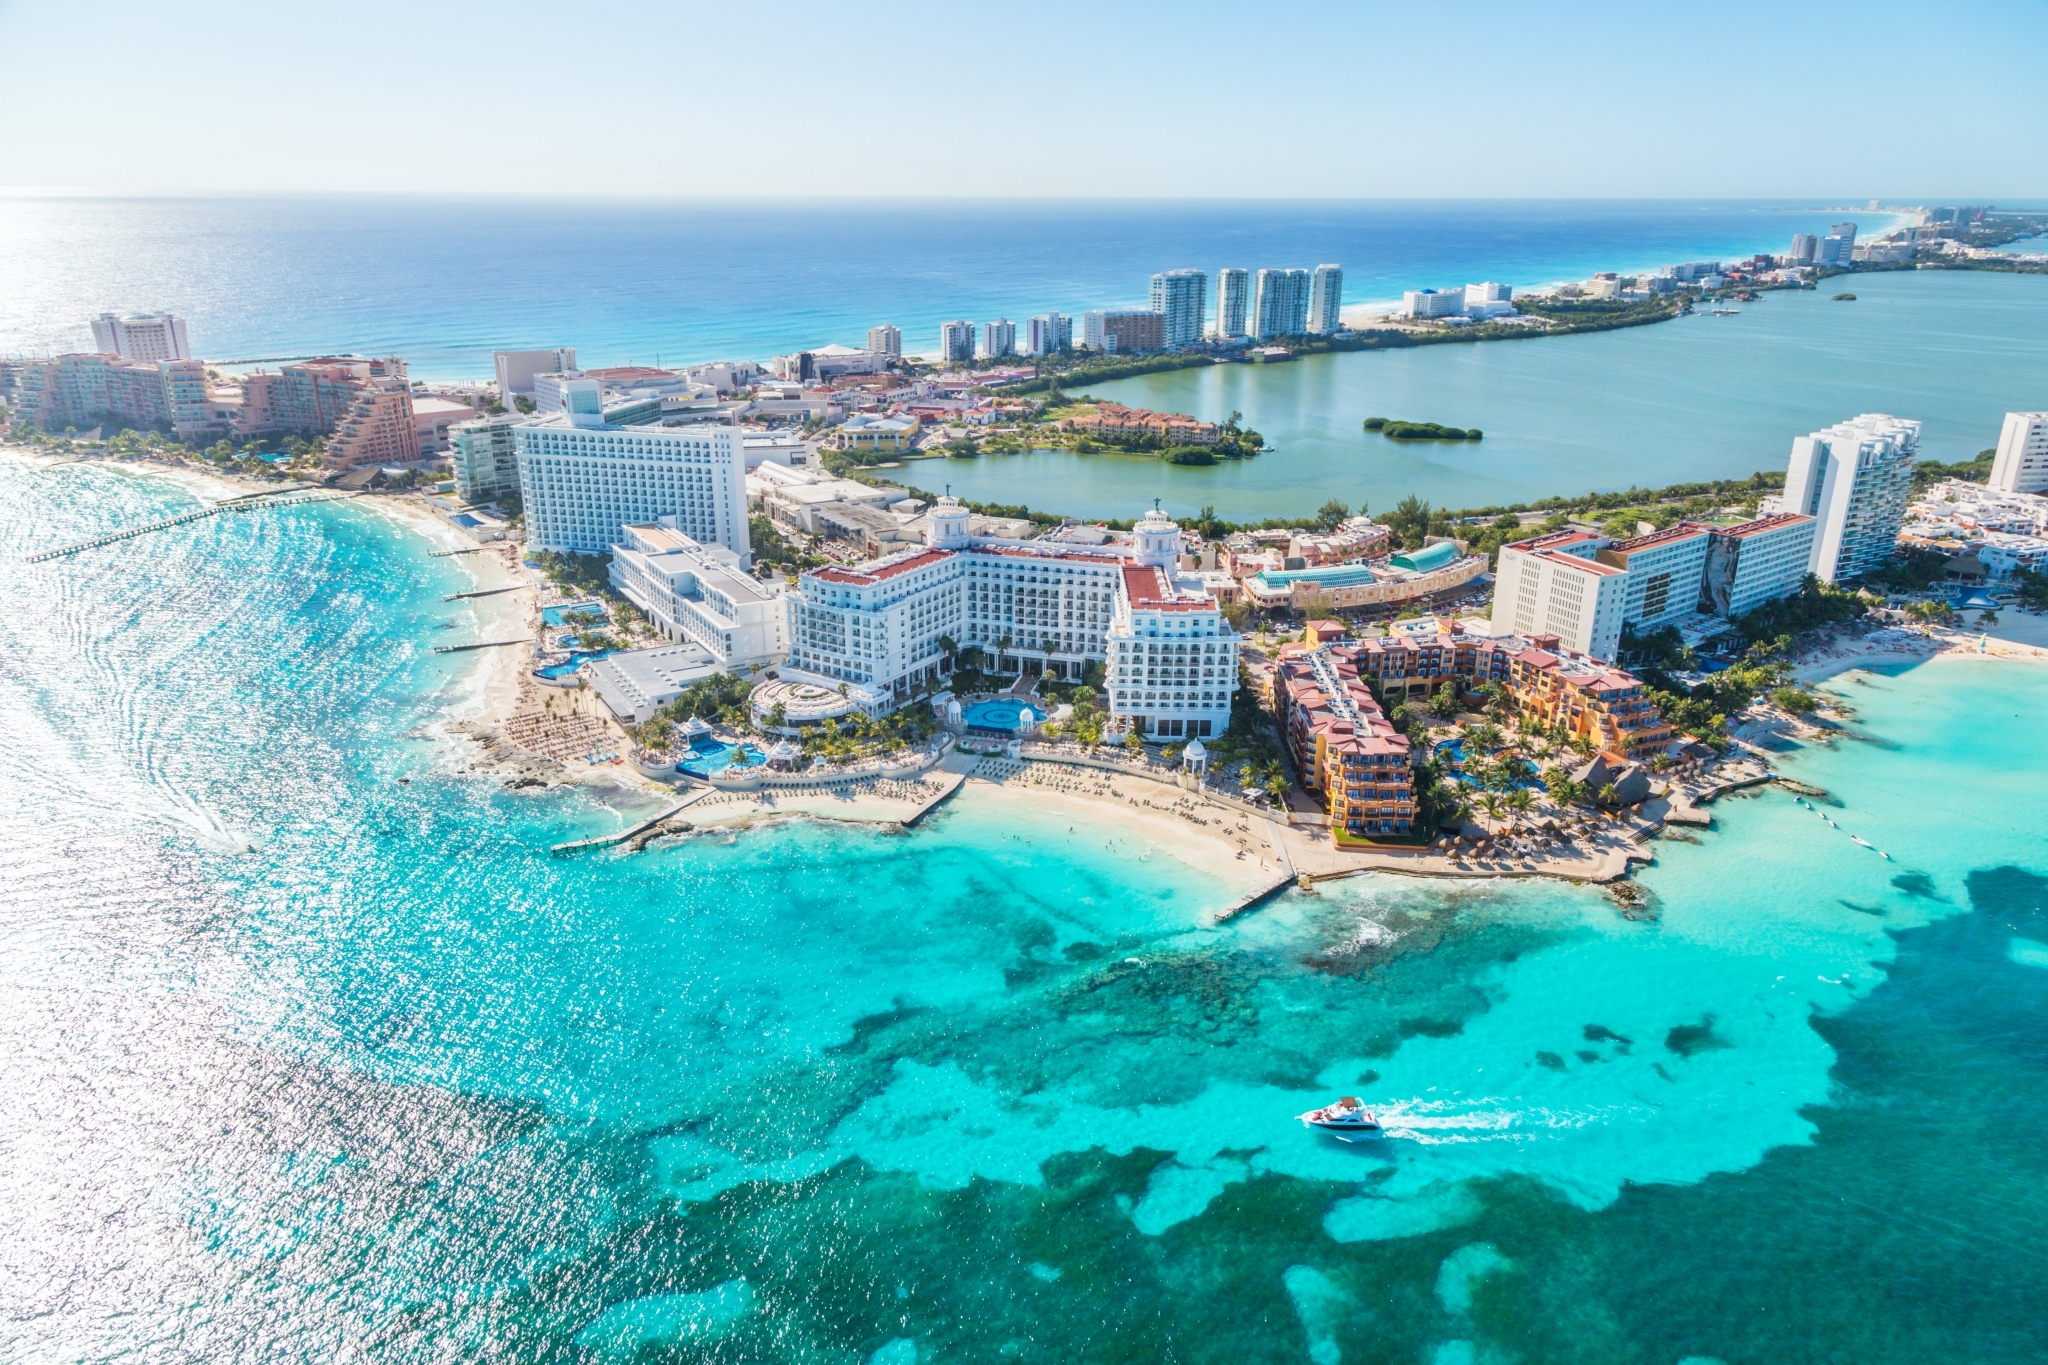 Seadust Cancun Family Resort Parnassus Cancun Call Toll Free 18887740040 or Book Online